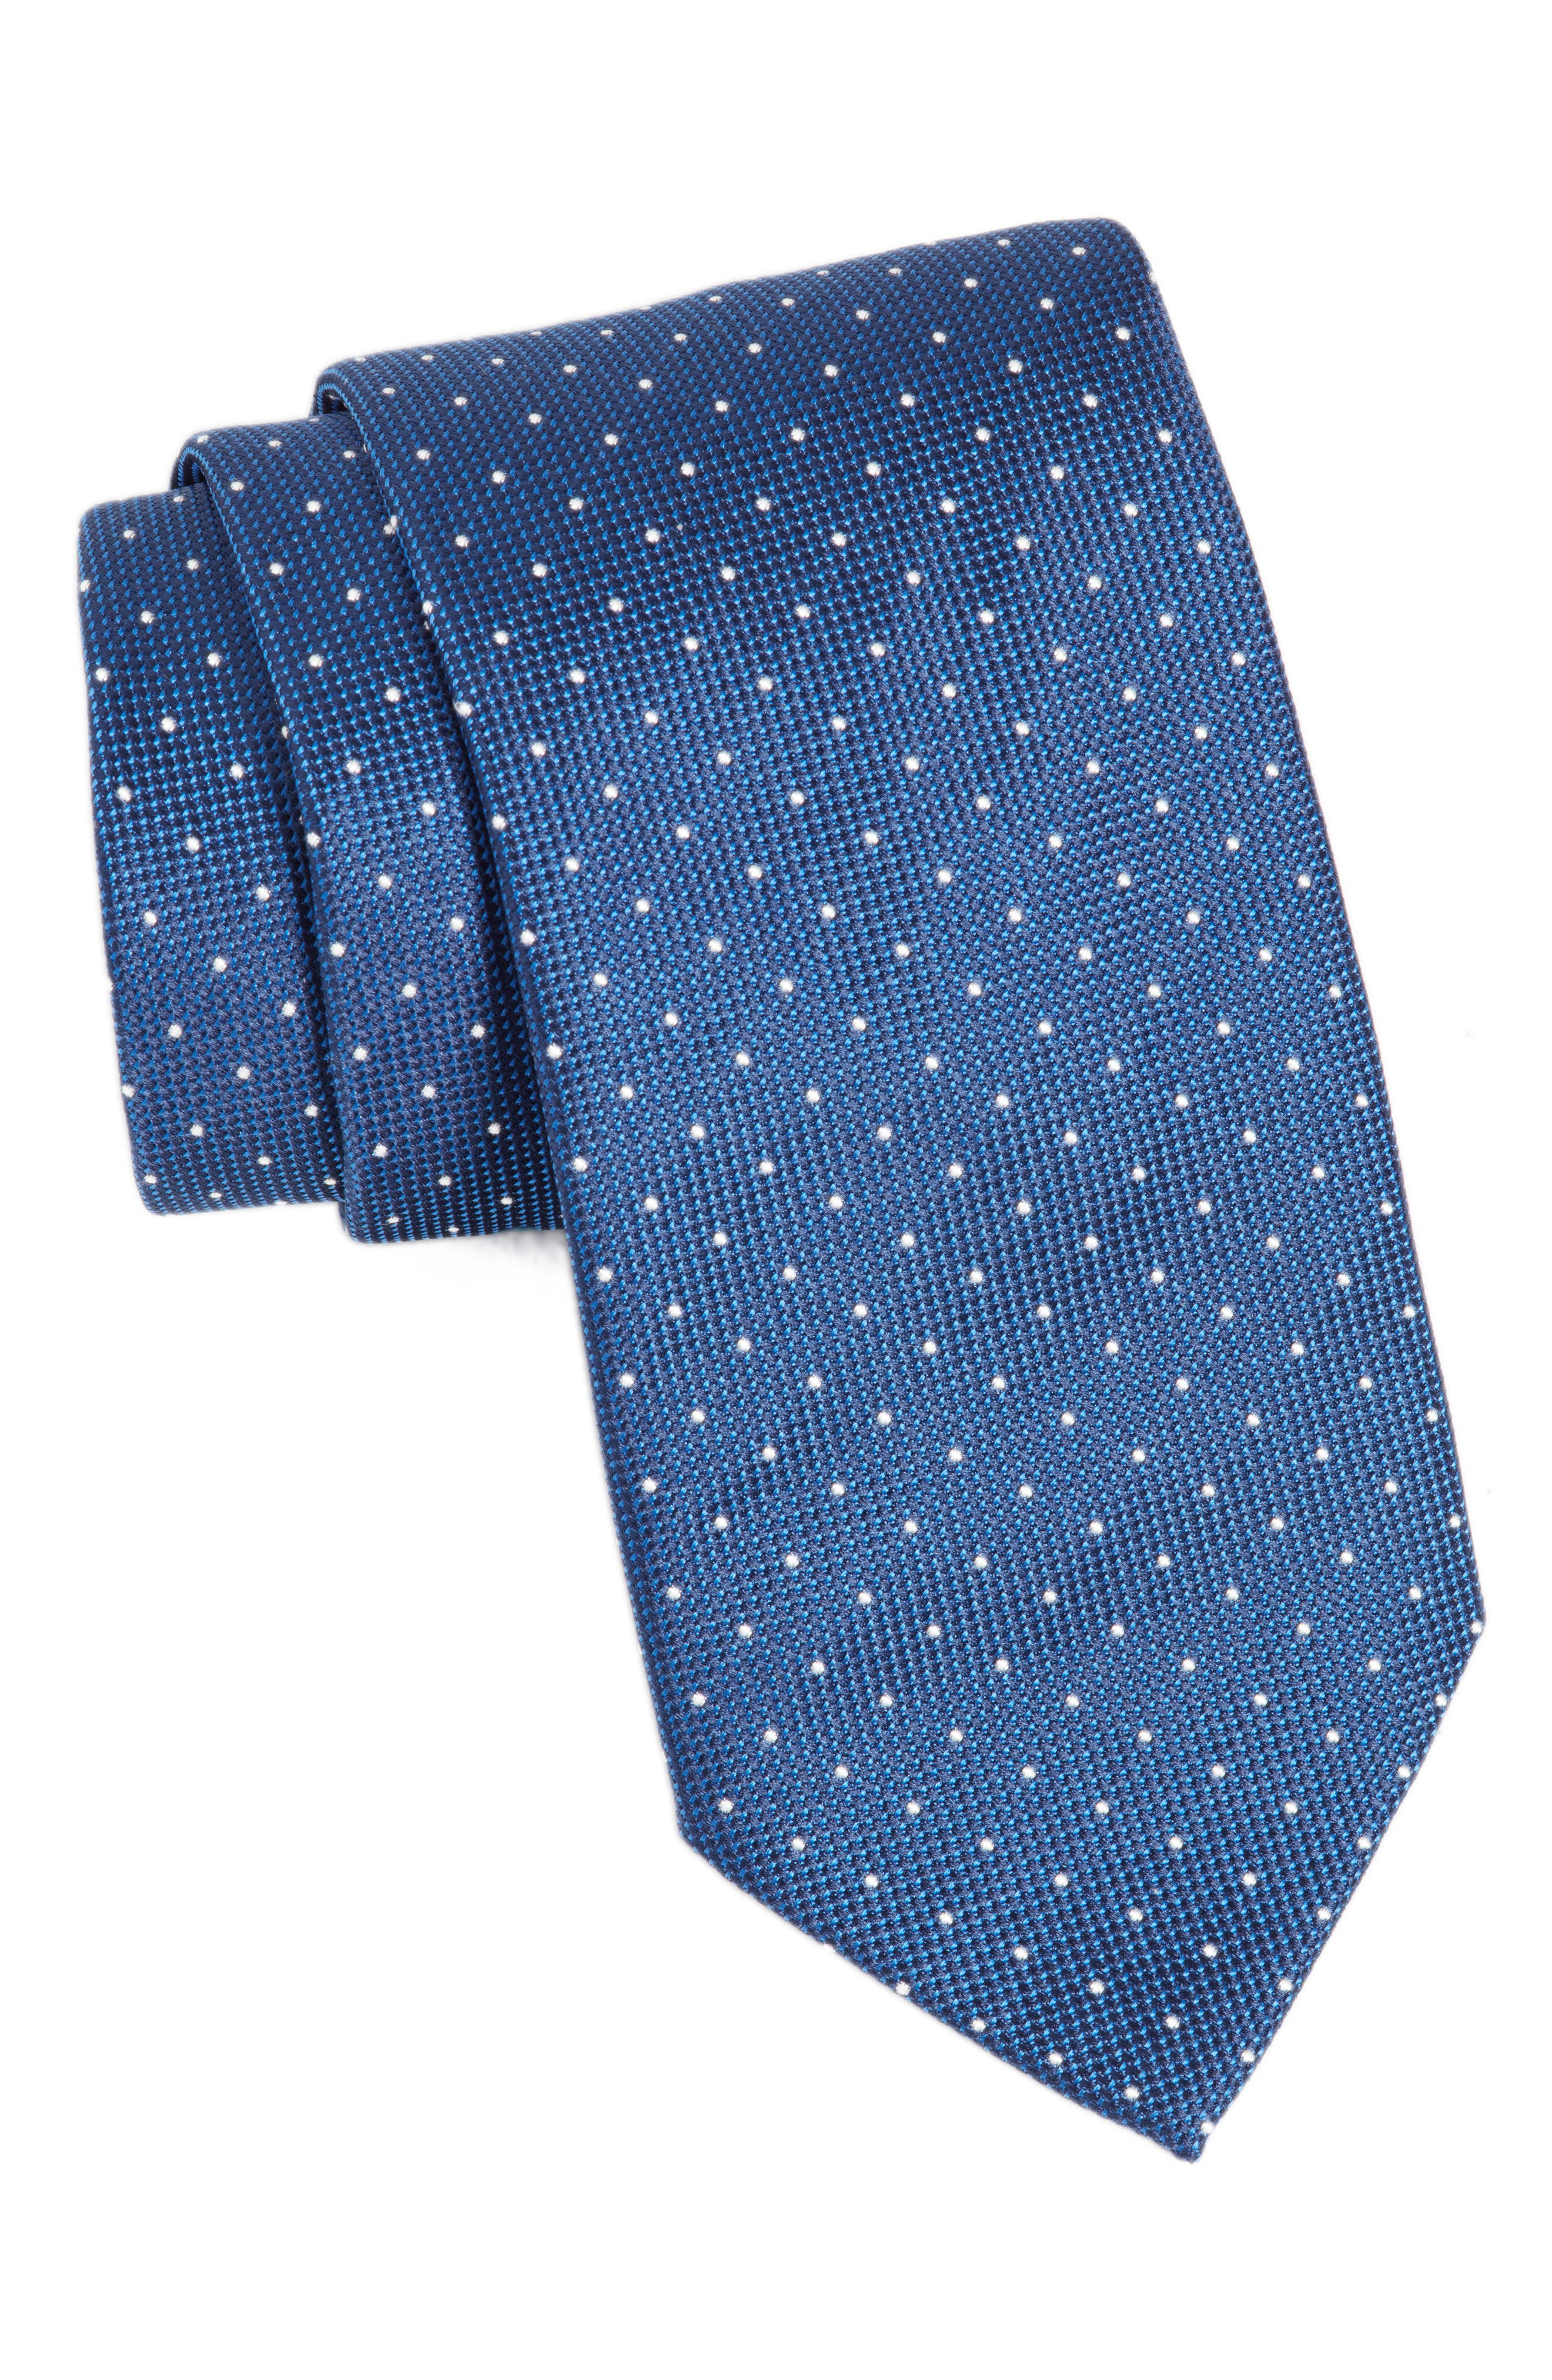 Dot Silk Tie,                         Main,                         color, Turquoise/ Aqua